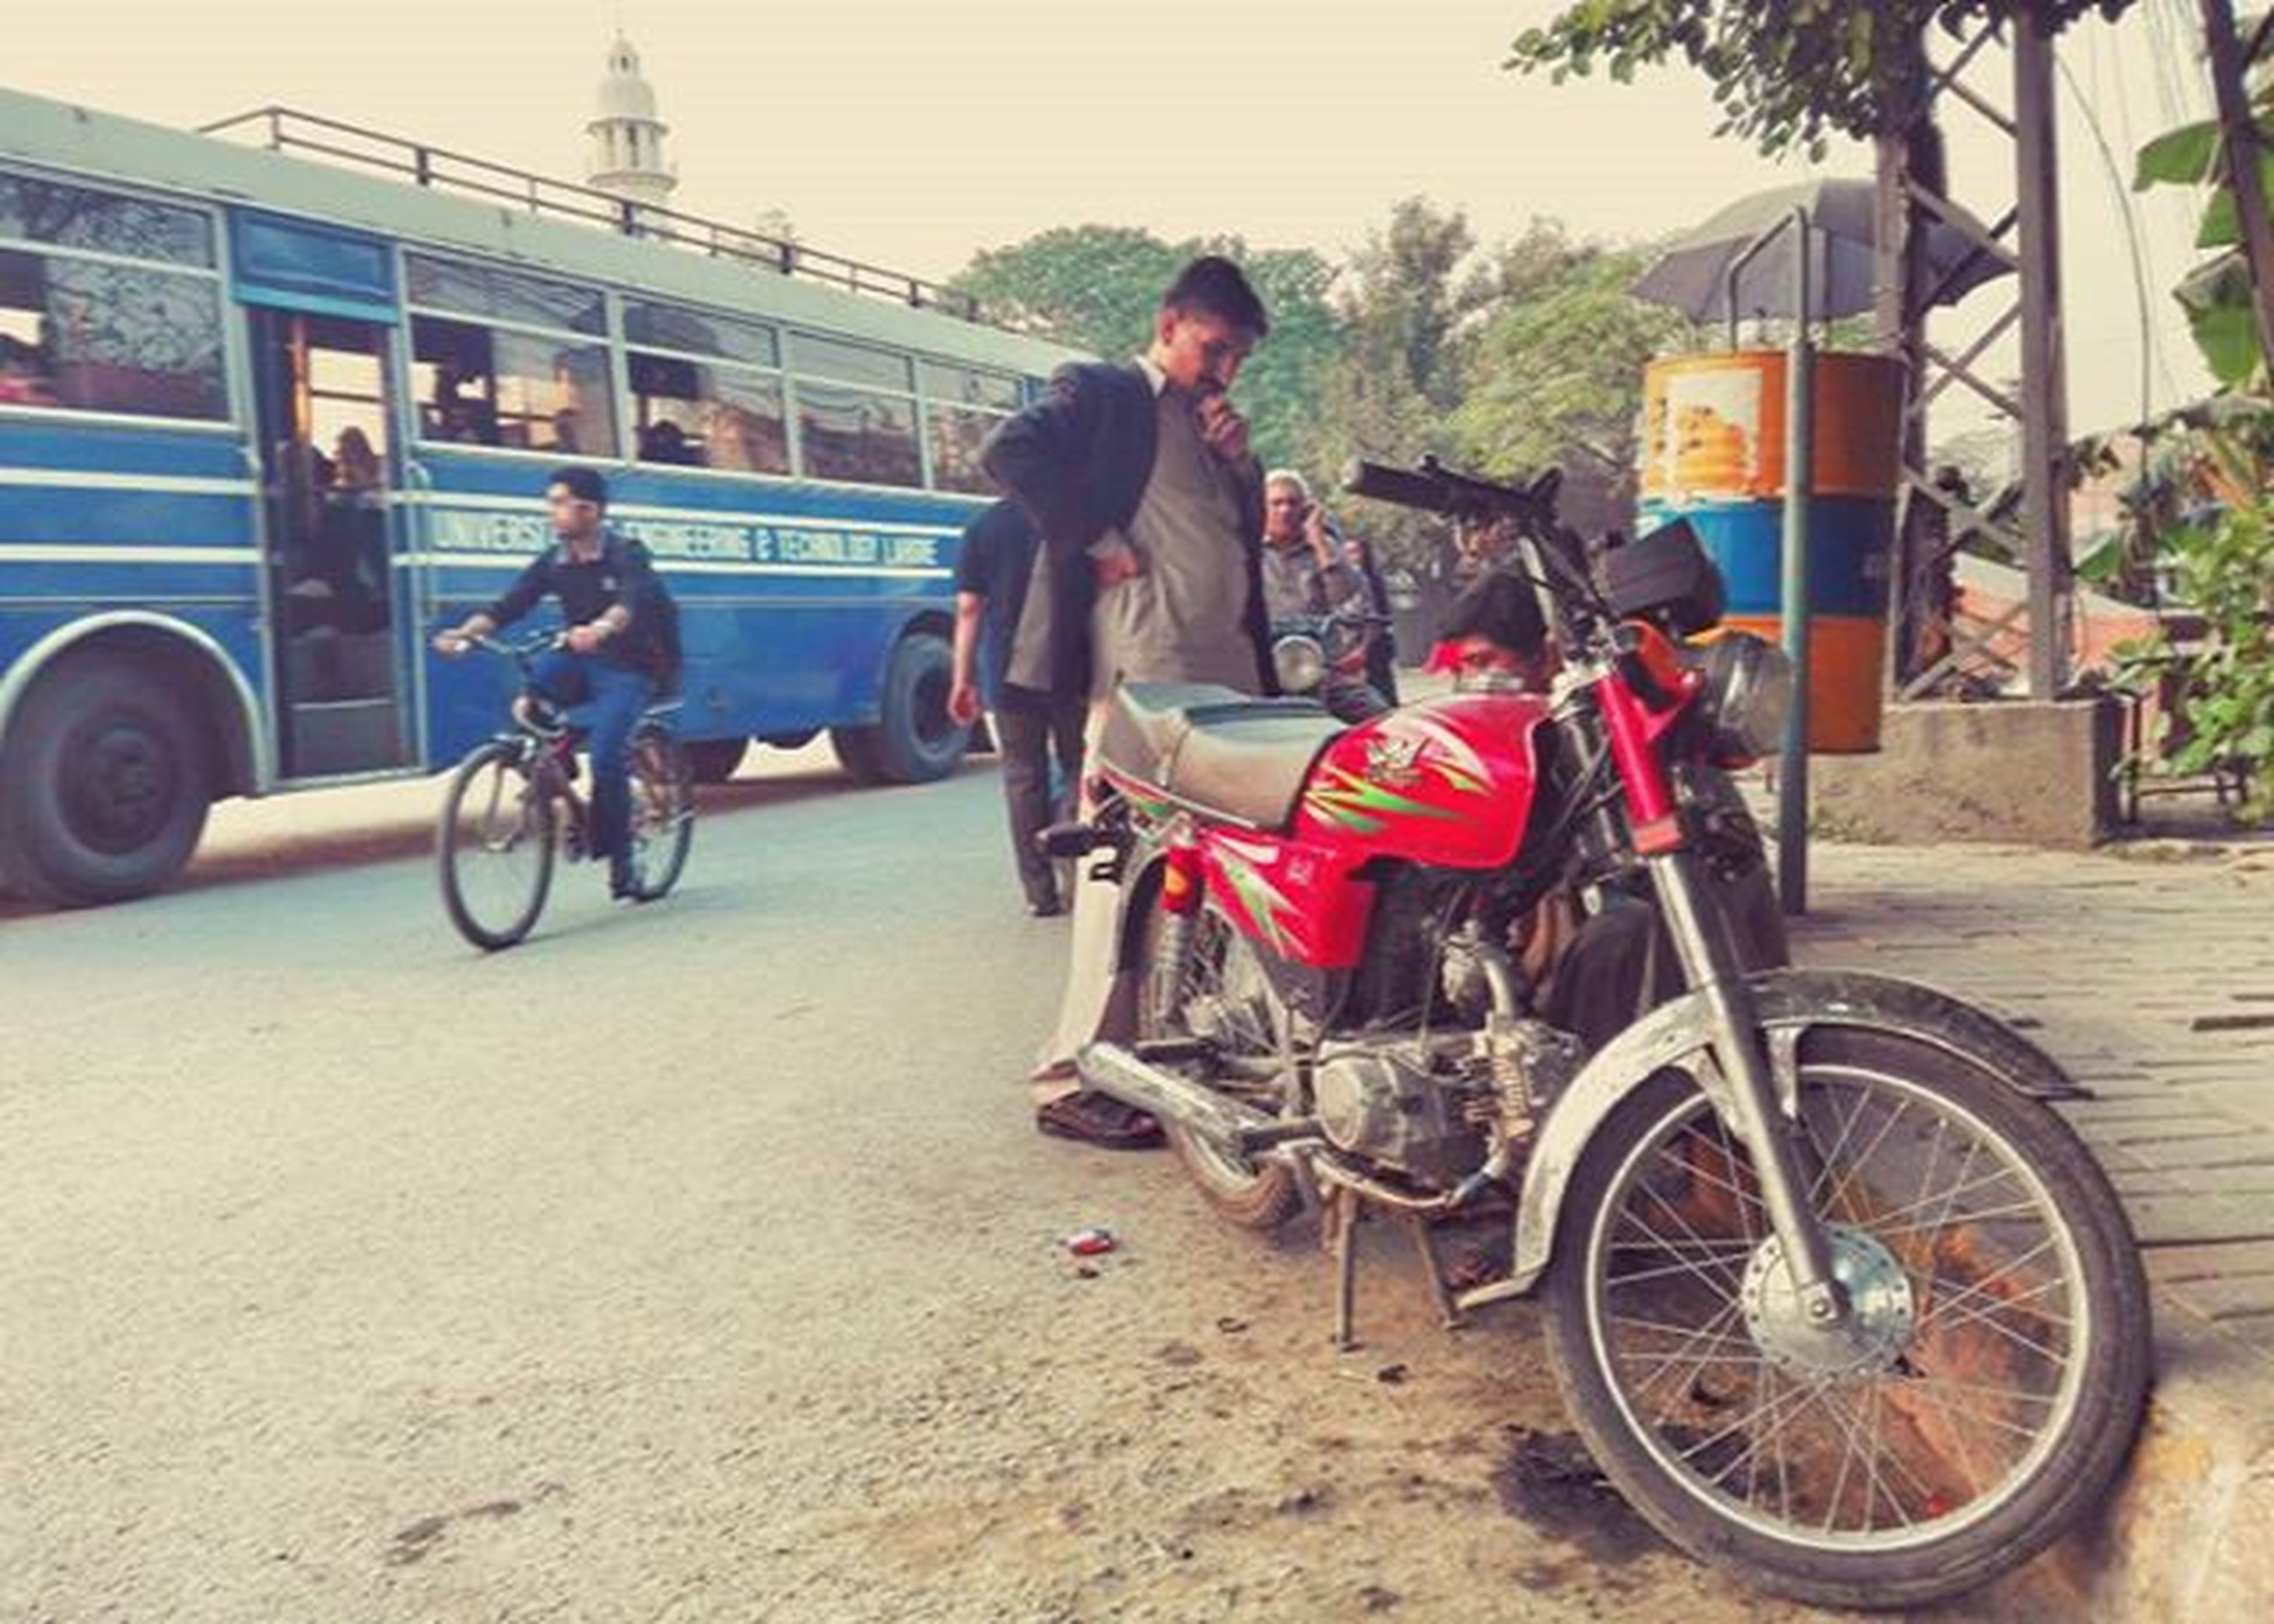 mode of transport, transportation, land vehicle, bicycle, lifestyles, riding, leisure activity, men, full length, casual clothing, travel, street, stationary, car, motorcycle, side view, togetherness